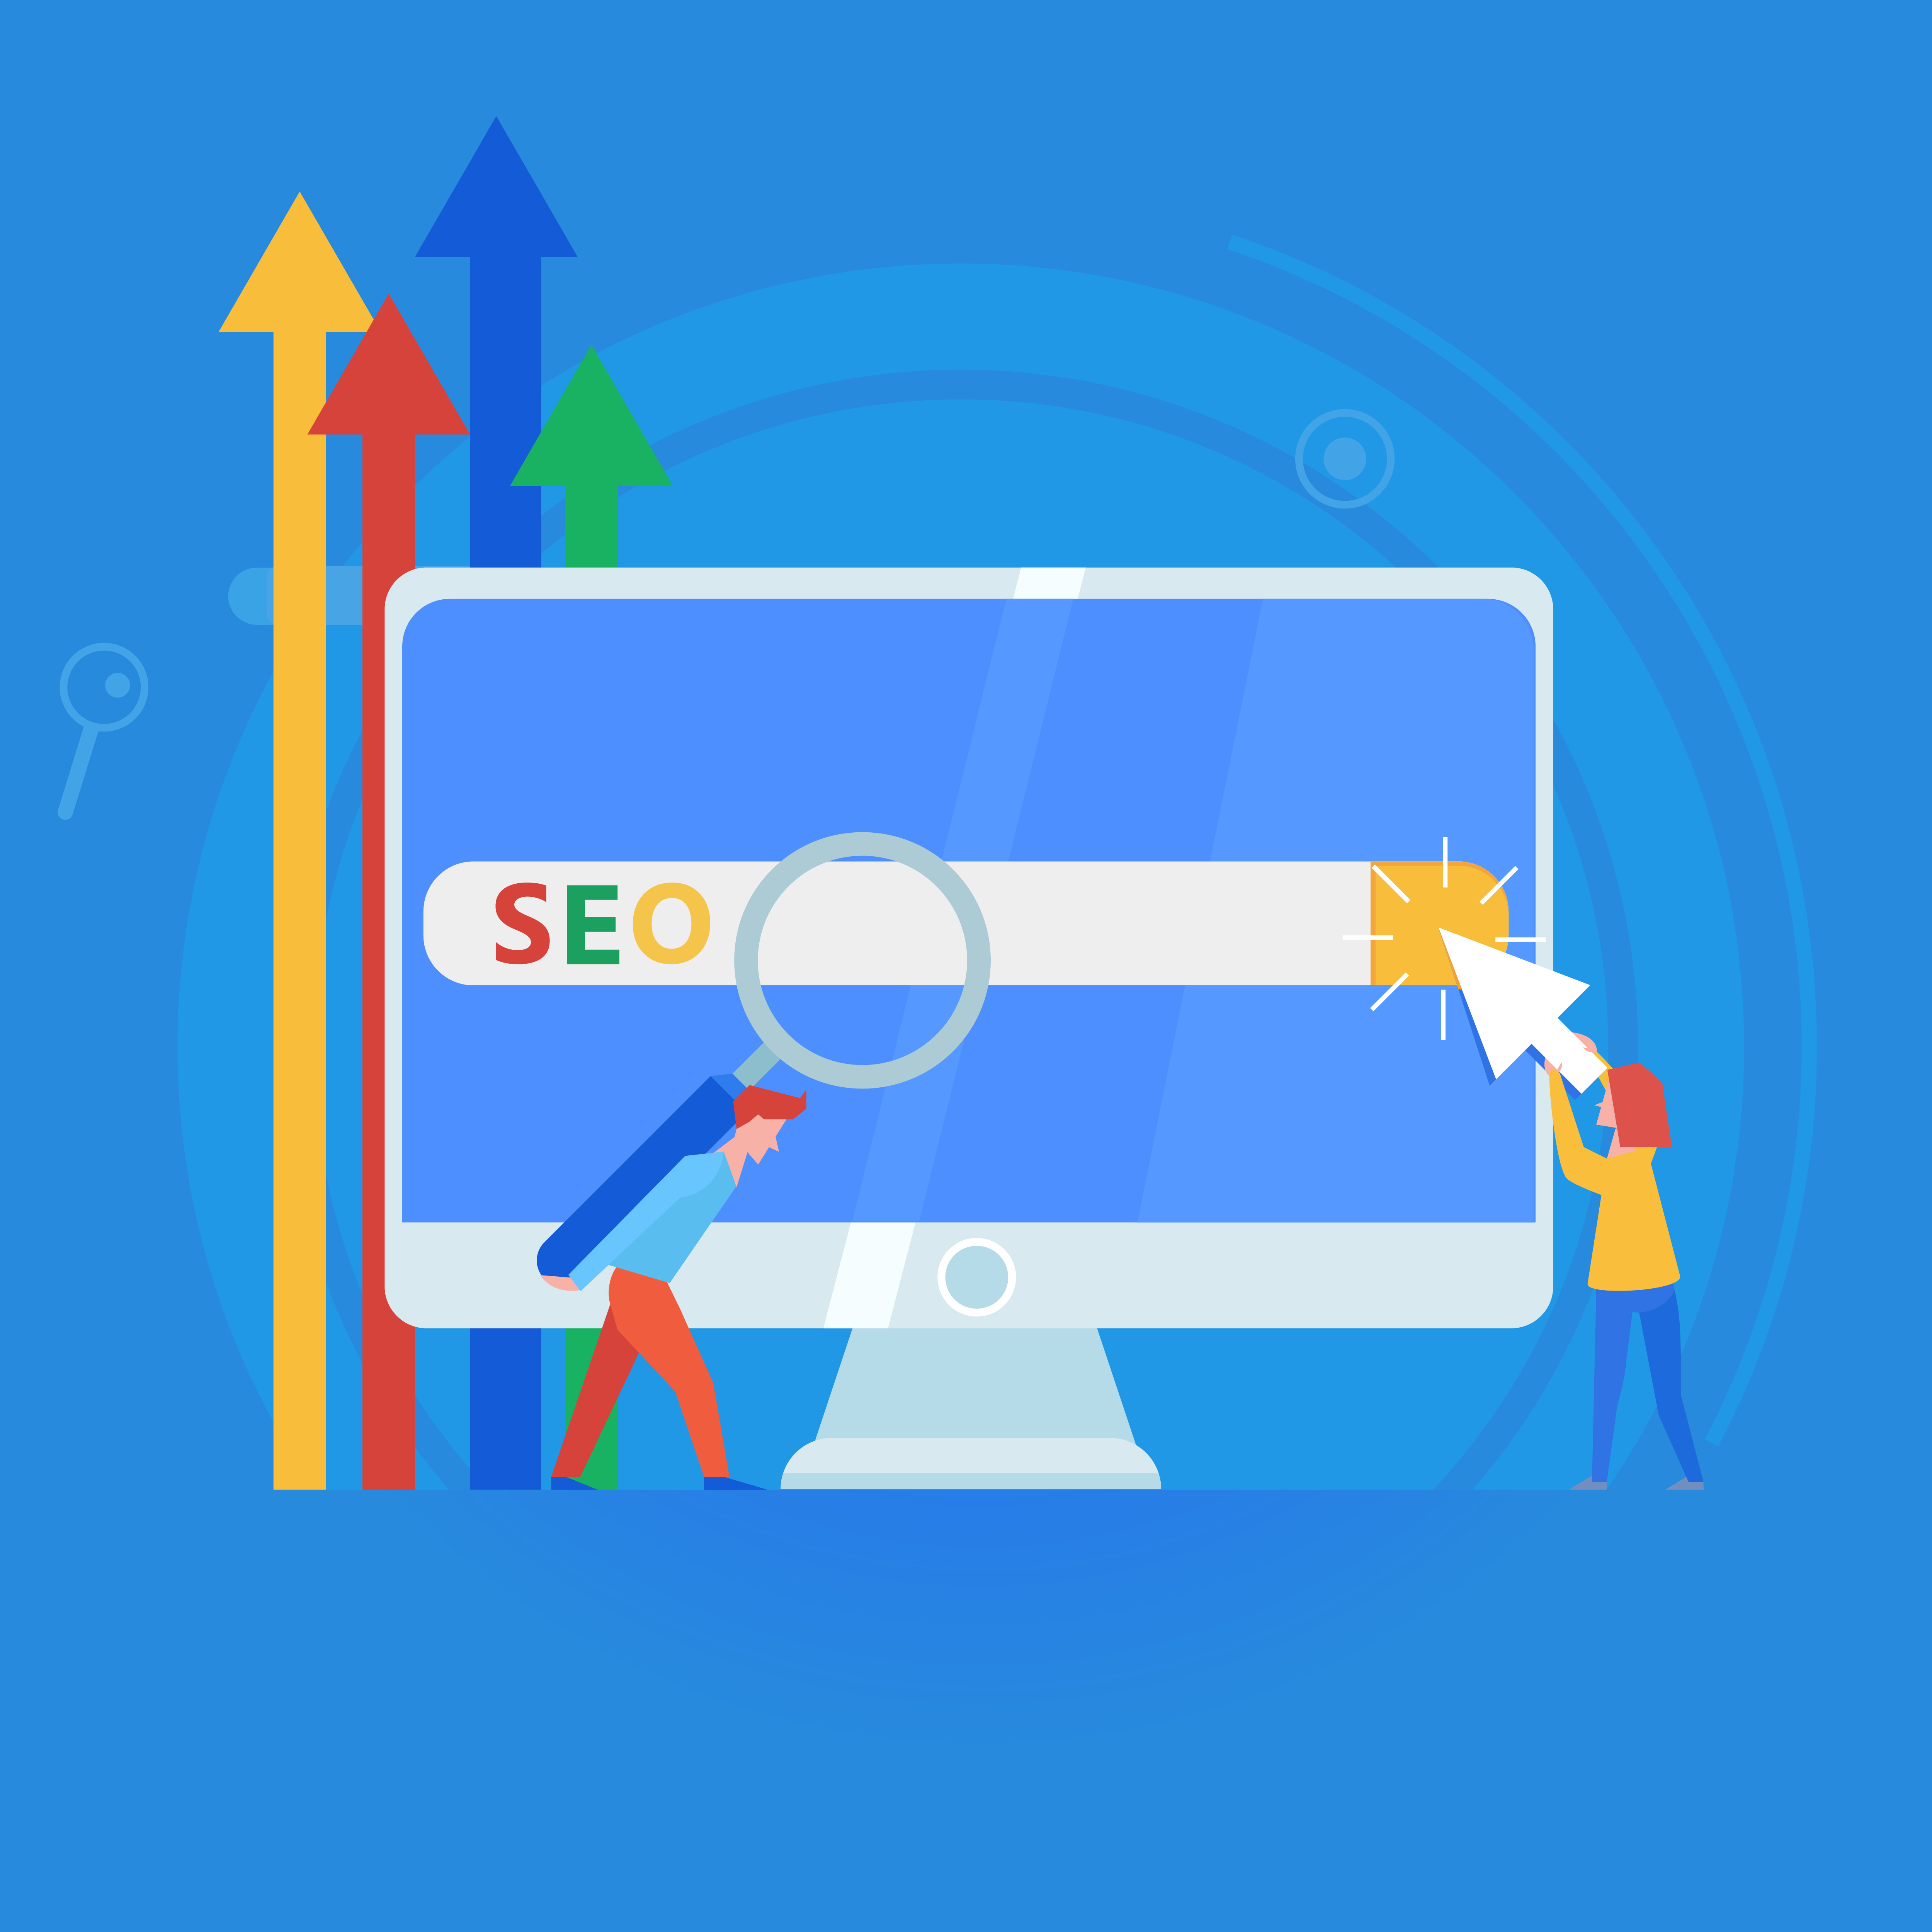 INDEX your BACKLINKS to RANK Higher  Submit your backlinks for indexing by the Search Engines